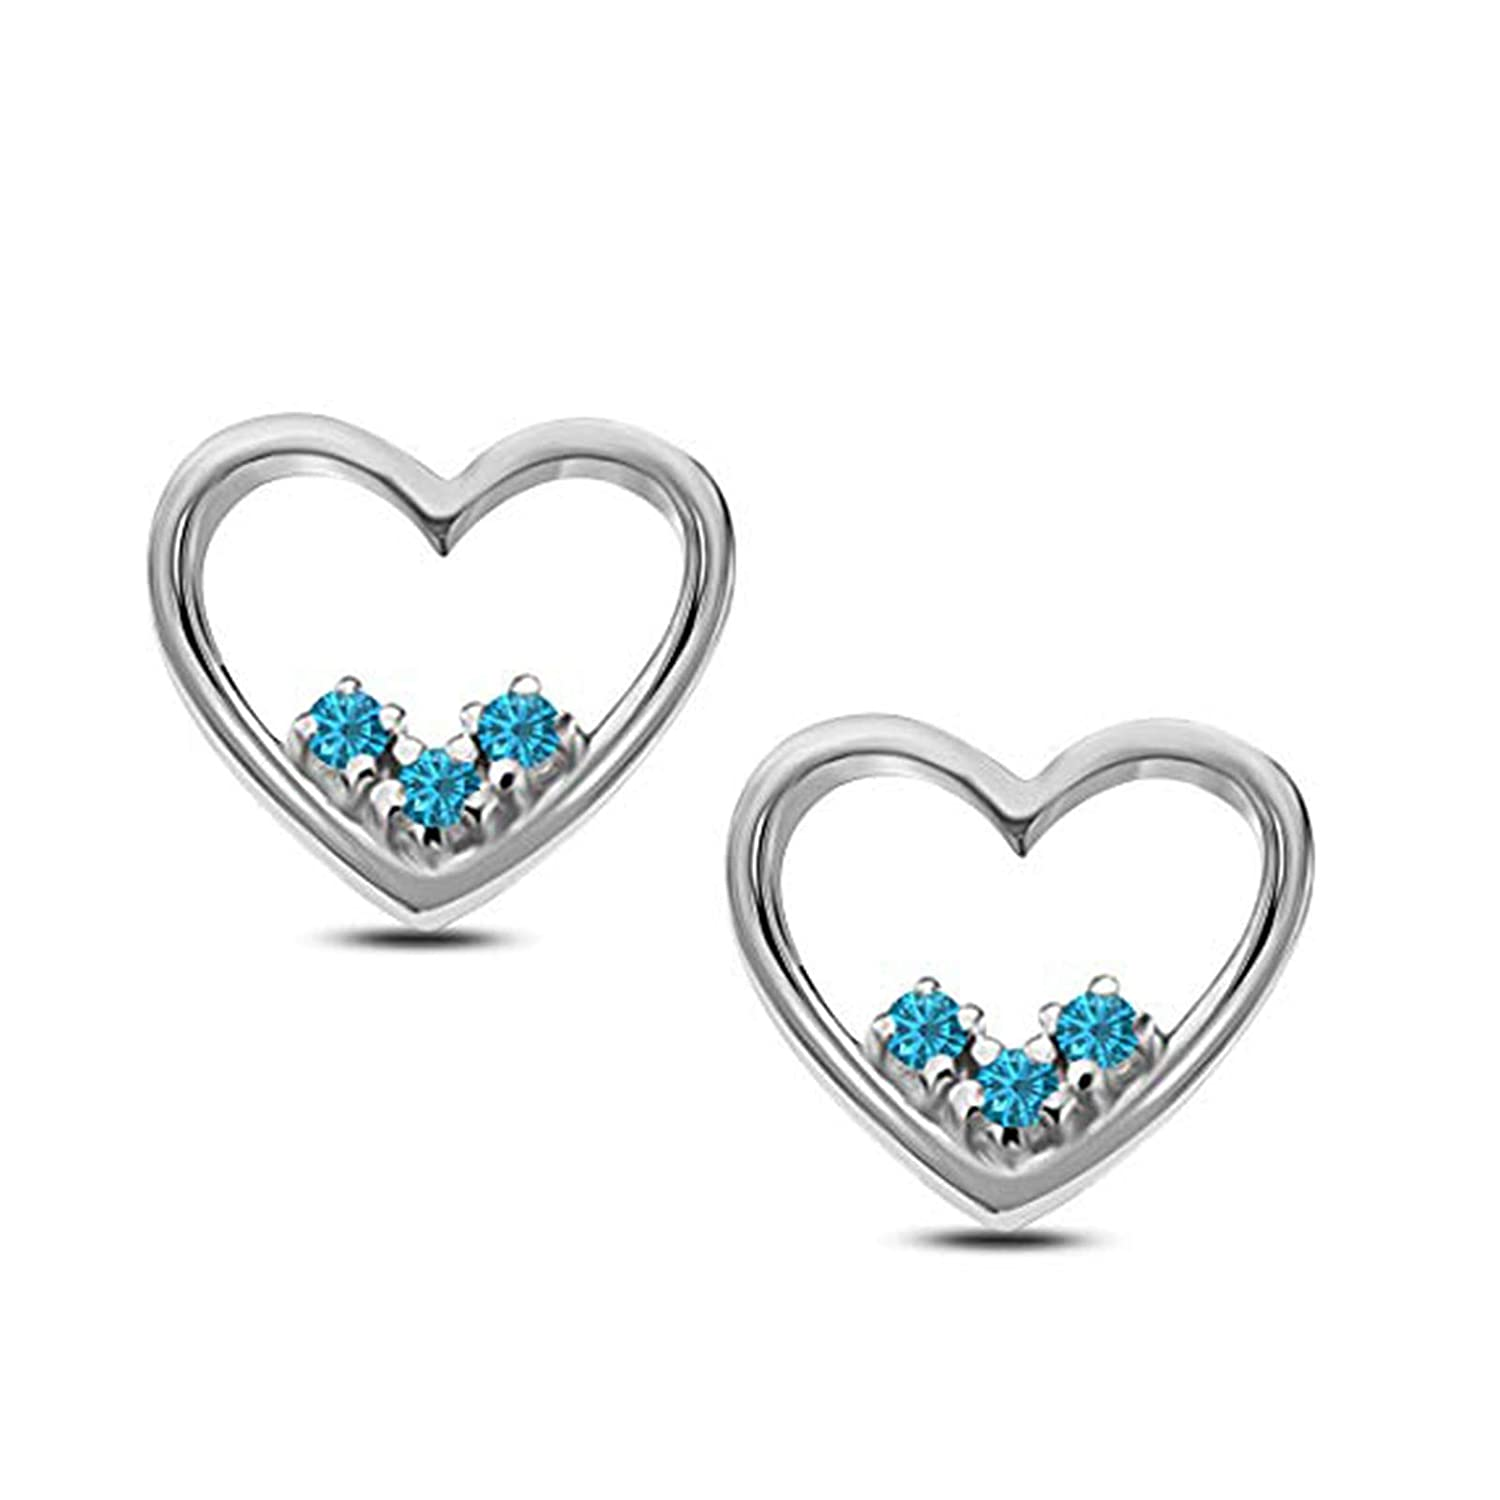 Suhana Jewellery Heart Earrings Collections 14K Gold Fn CZ Stud Earring for Girls Womens Daily Wear Jewellery